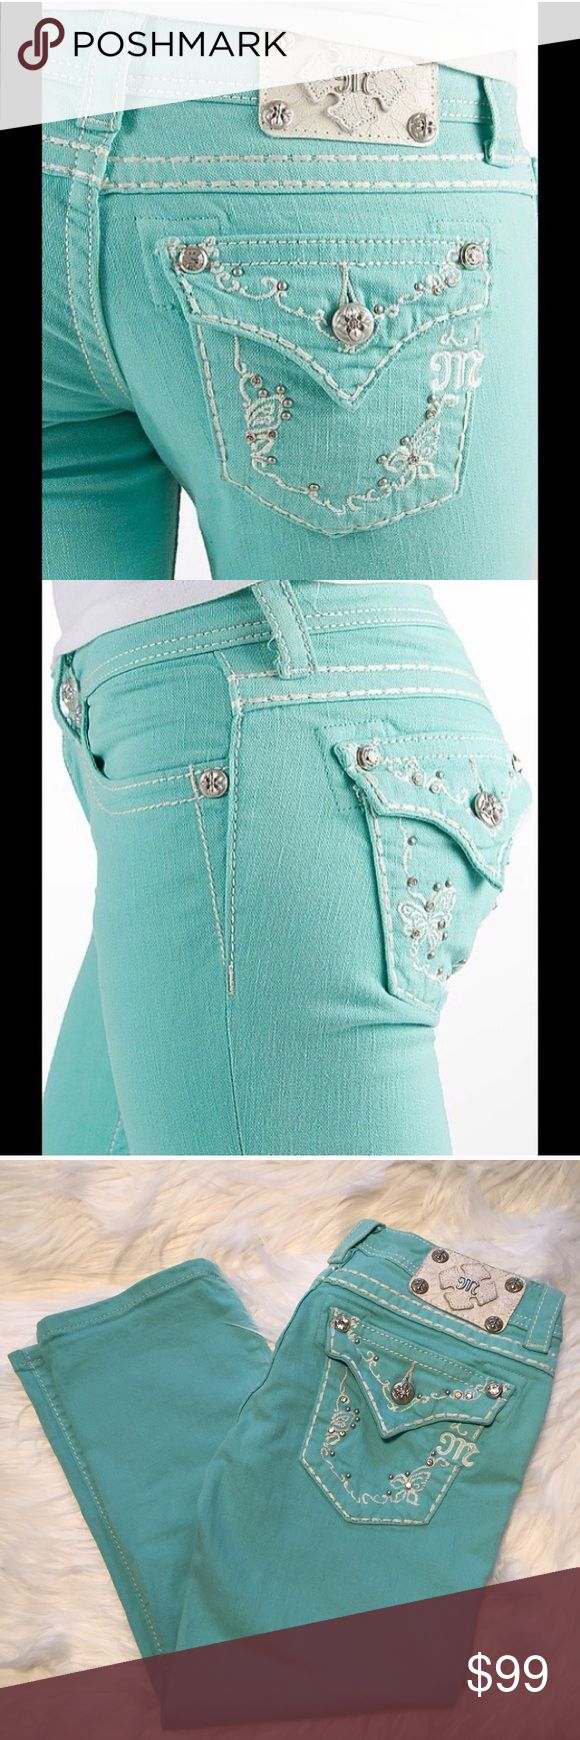 "Miss Me Mint Capri Stretch Jeans 27 excellent Very clean and in excellent preloved condition. This is my favorite color in the whole wide world and I wish these were my size. Very rare and priced accordingly. 2% elastane. Size 27. 28"" unstretched waist. 7"" rise. 22"" inseam. Miss Me Jeans Ankle & Cropped"